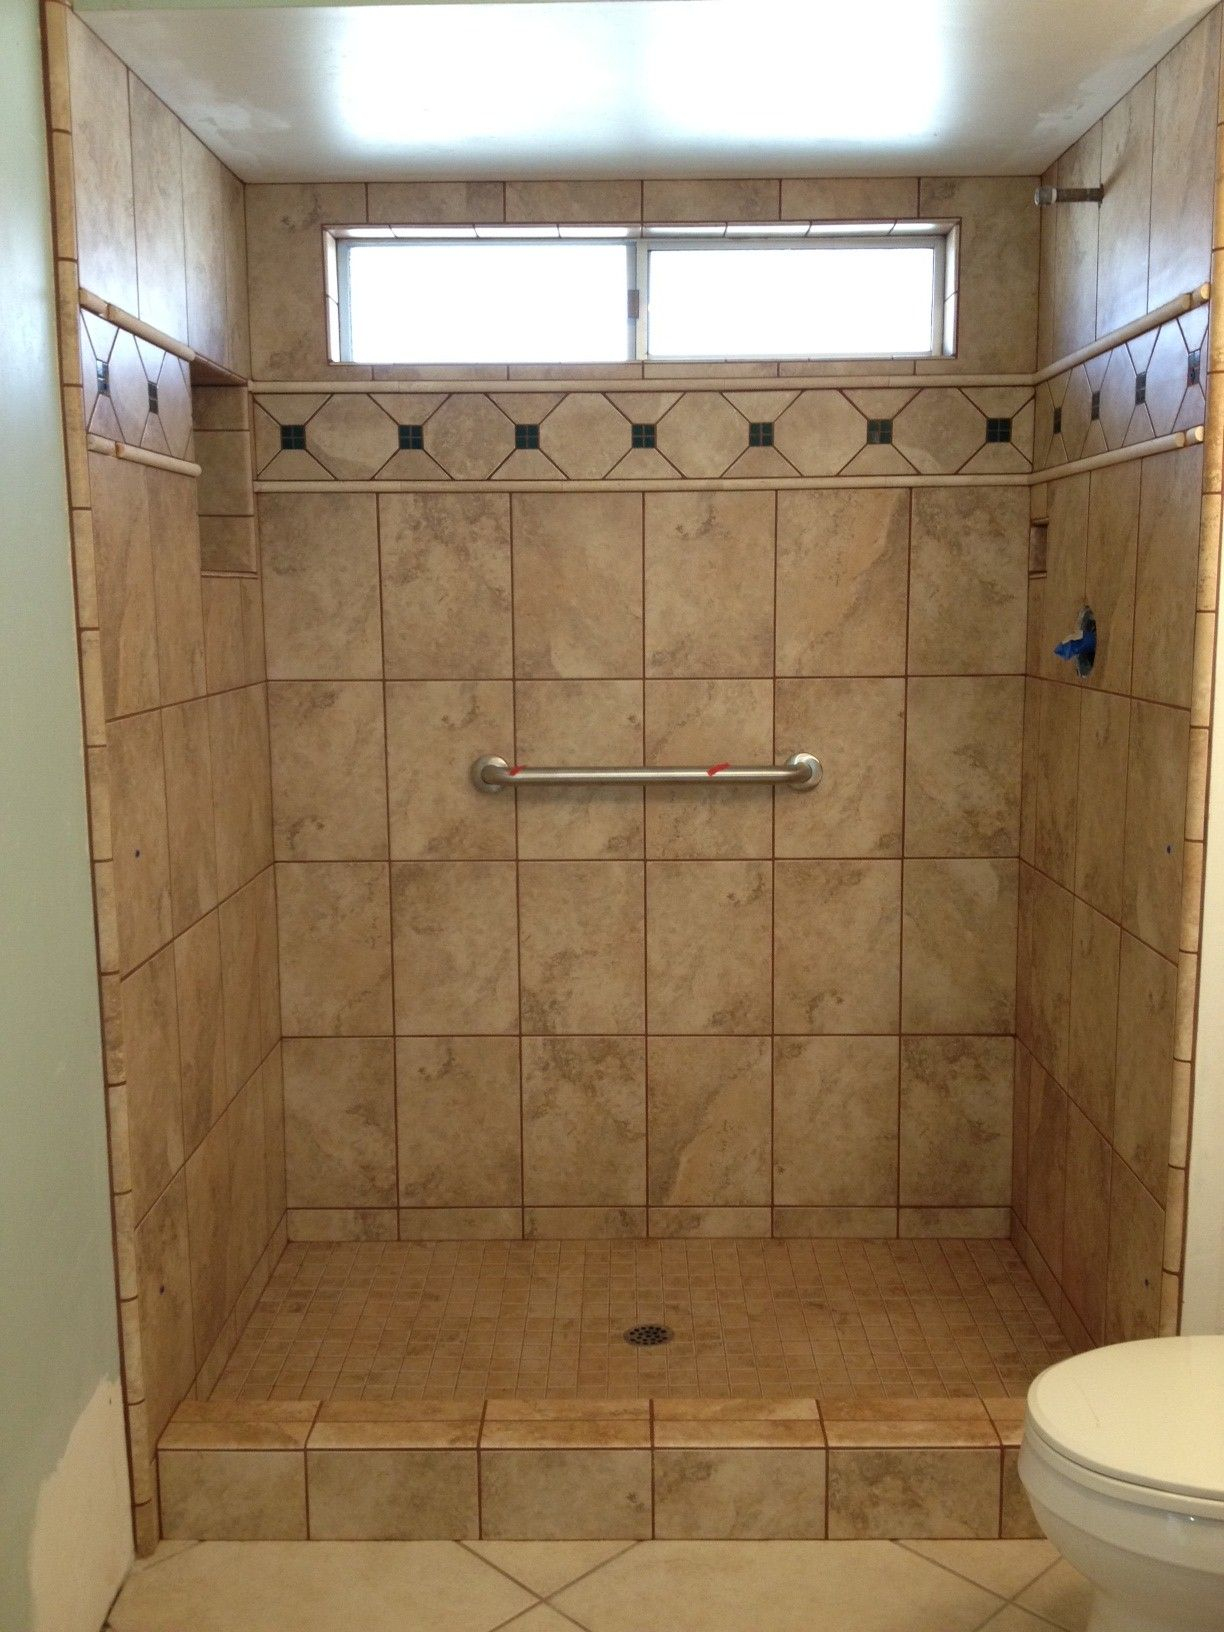 Photos of tiled shower stalls photos gallery custom tile work co ceramic natural stone Bathroom remodeling ideas shower stalls